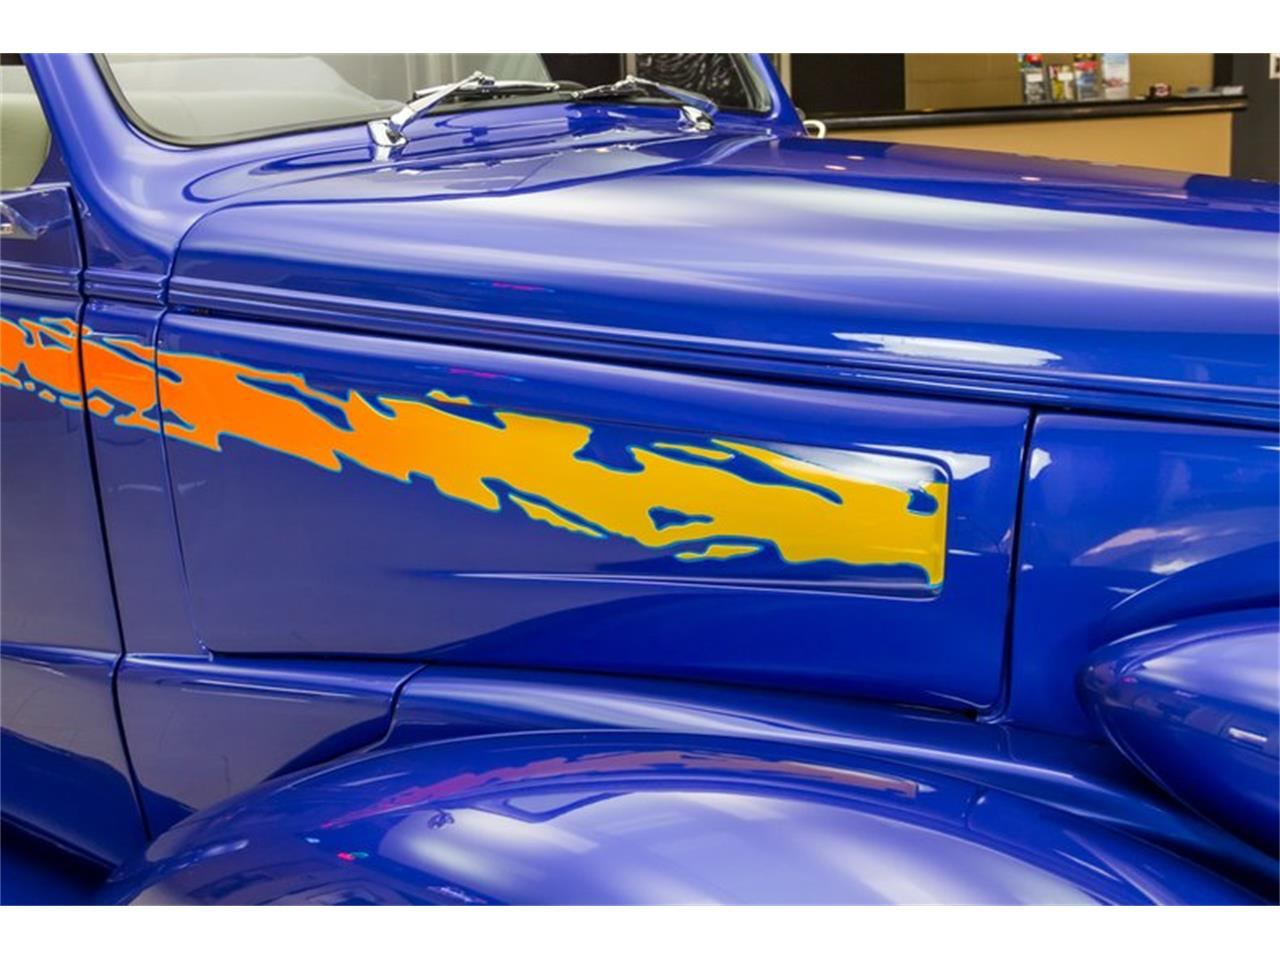 Large Picture of 1937 Chevrolet Antique - $49,900.00 - N75T